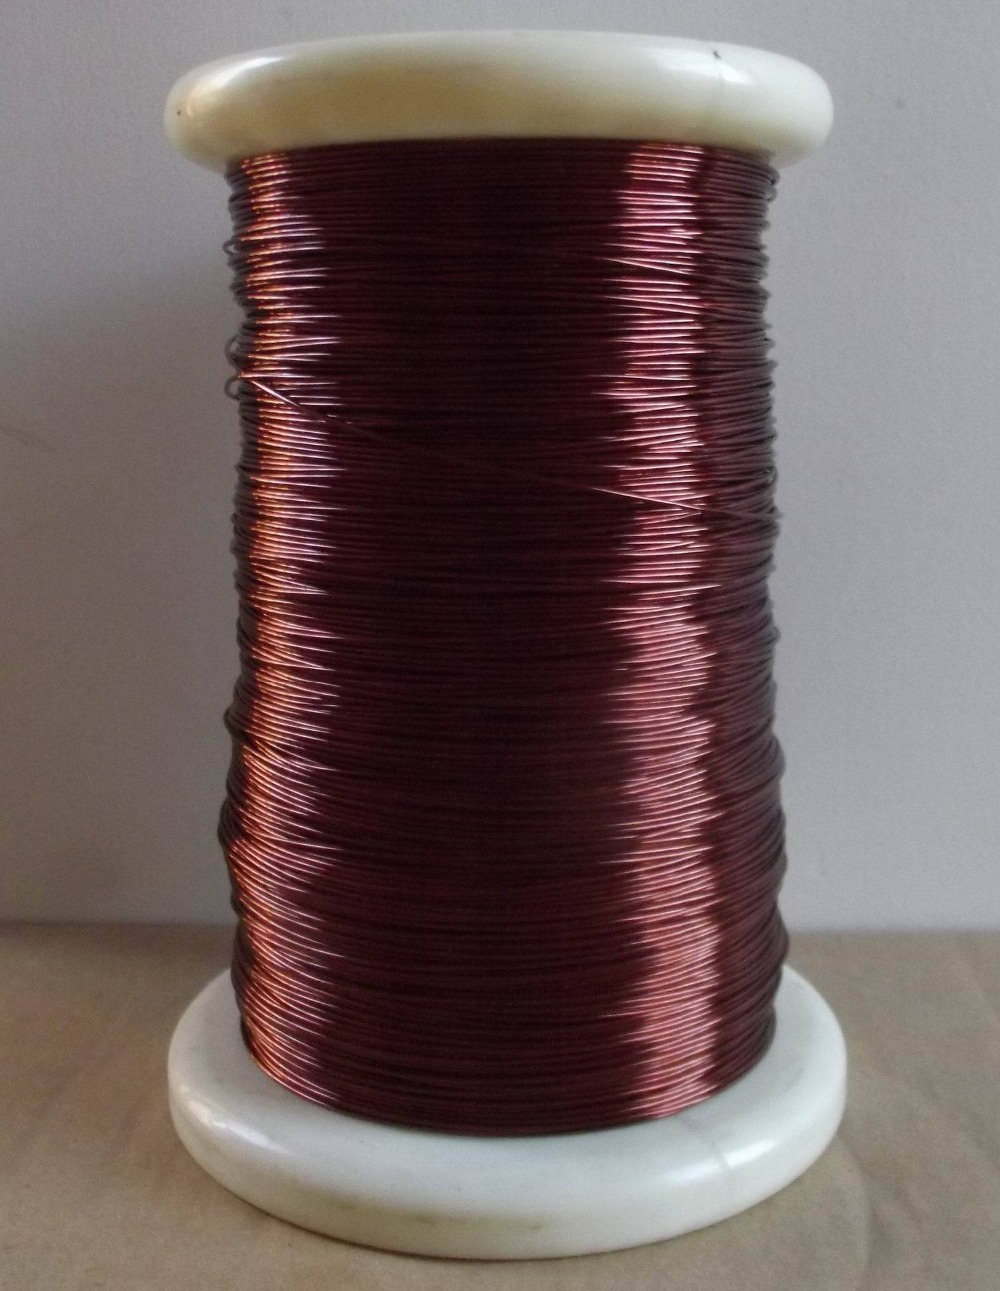 1.5mm 20meters Magnet Wire  Enameled Copper wire Magnetic Coil Winding all sizes in stock